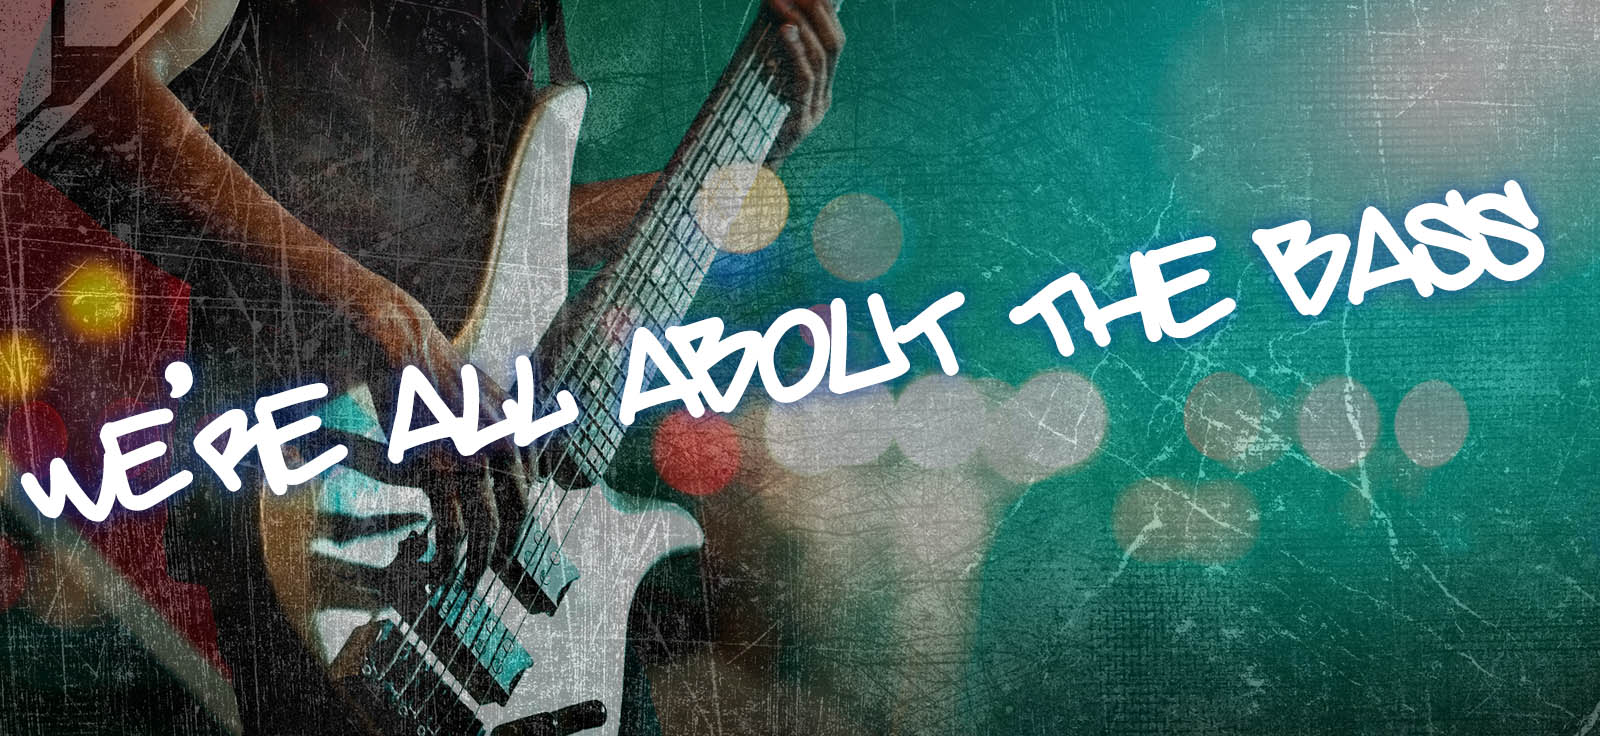 bass lessons header image